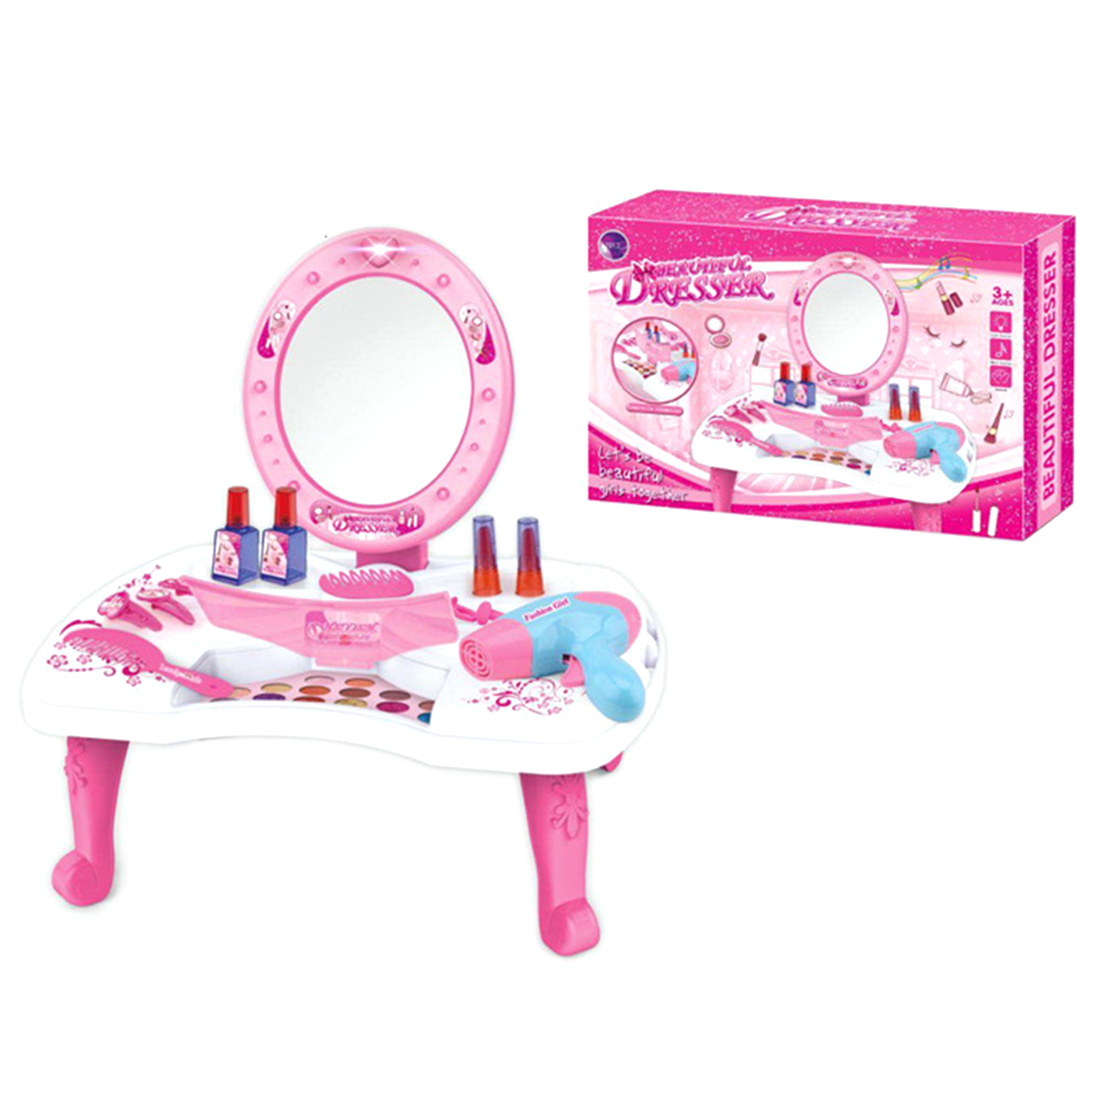 Hot Sale Makeup Toy 26Pcs Children Pretend Play Dressing Table Toy Pretend Kits Girl Pretend Play Cosmetics Playset For Children